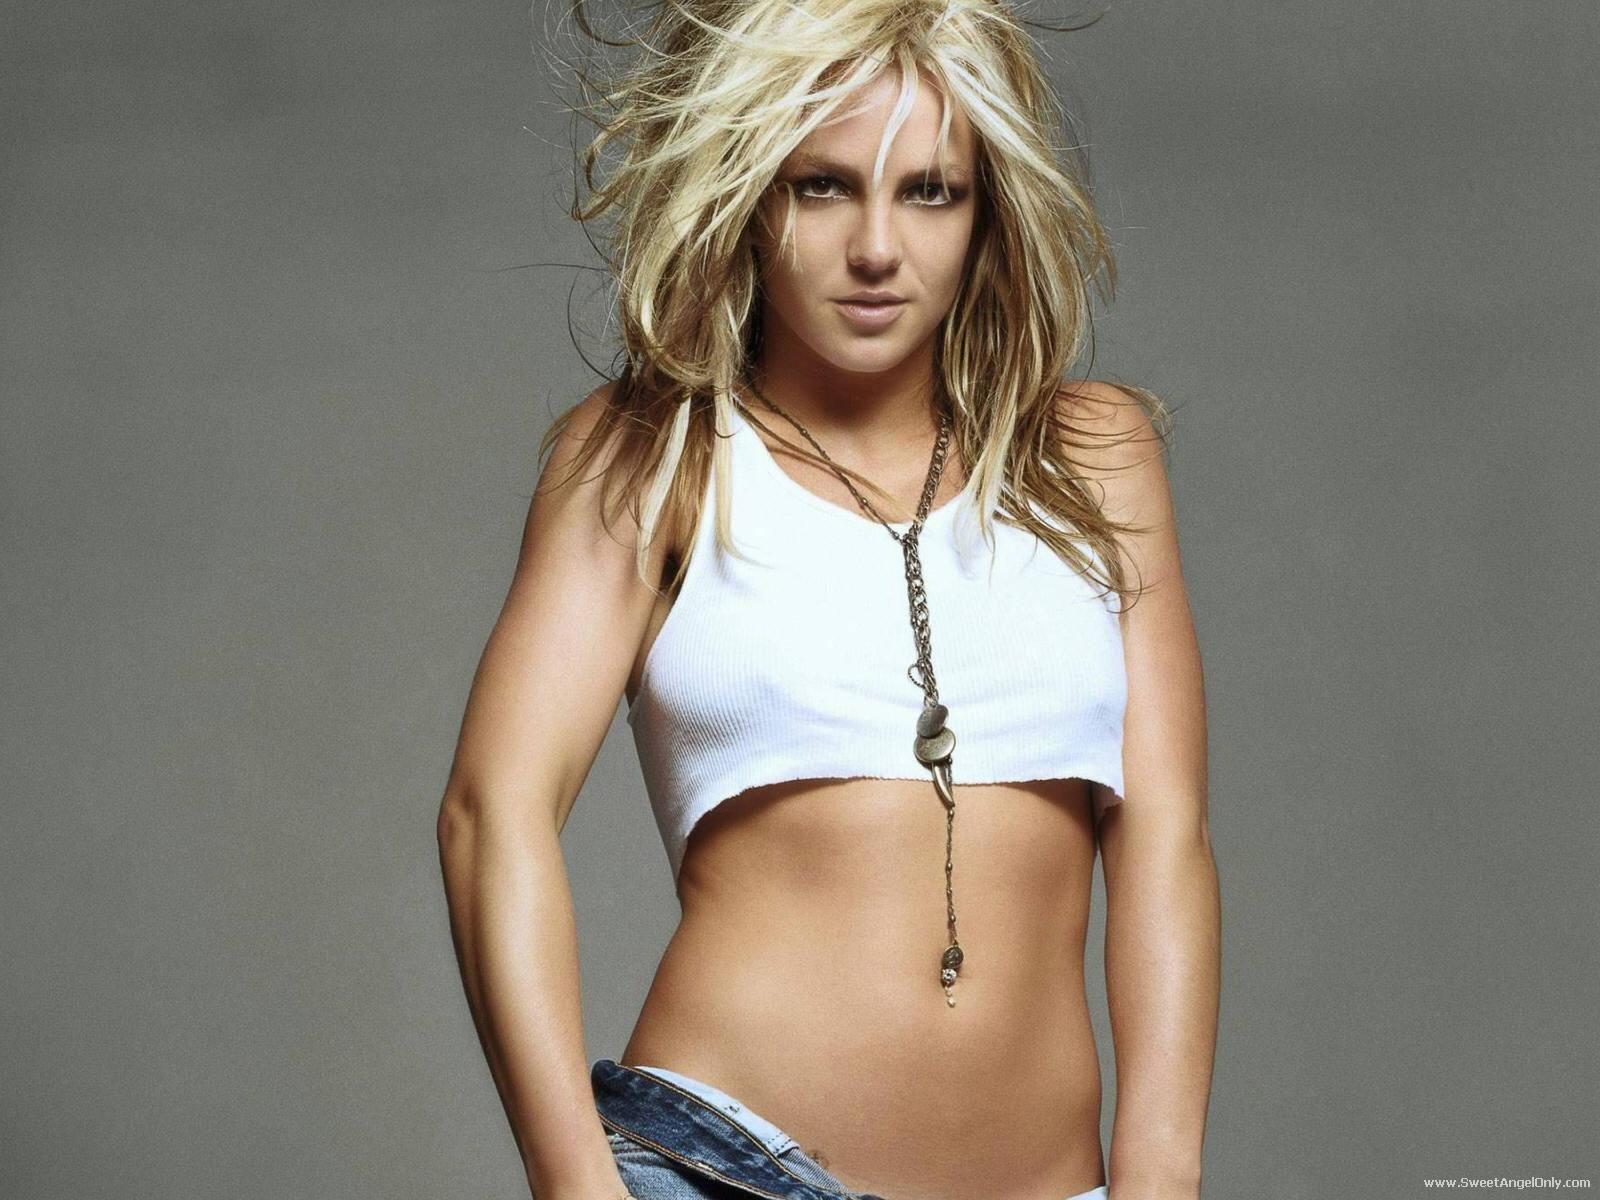 http://3.bp.blogspot.com/-tWWYW0rx4Vw/TtiS8WwHcaI/AAAAAAAABRk/Atv_kUTBCb8/s1600/hollywood_singer_britney_spears_wallpaper-1600x1200-03.jpg